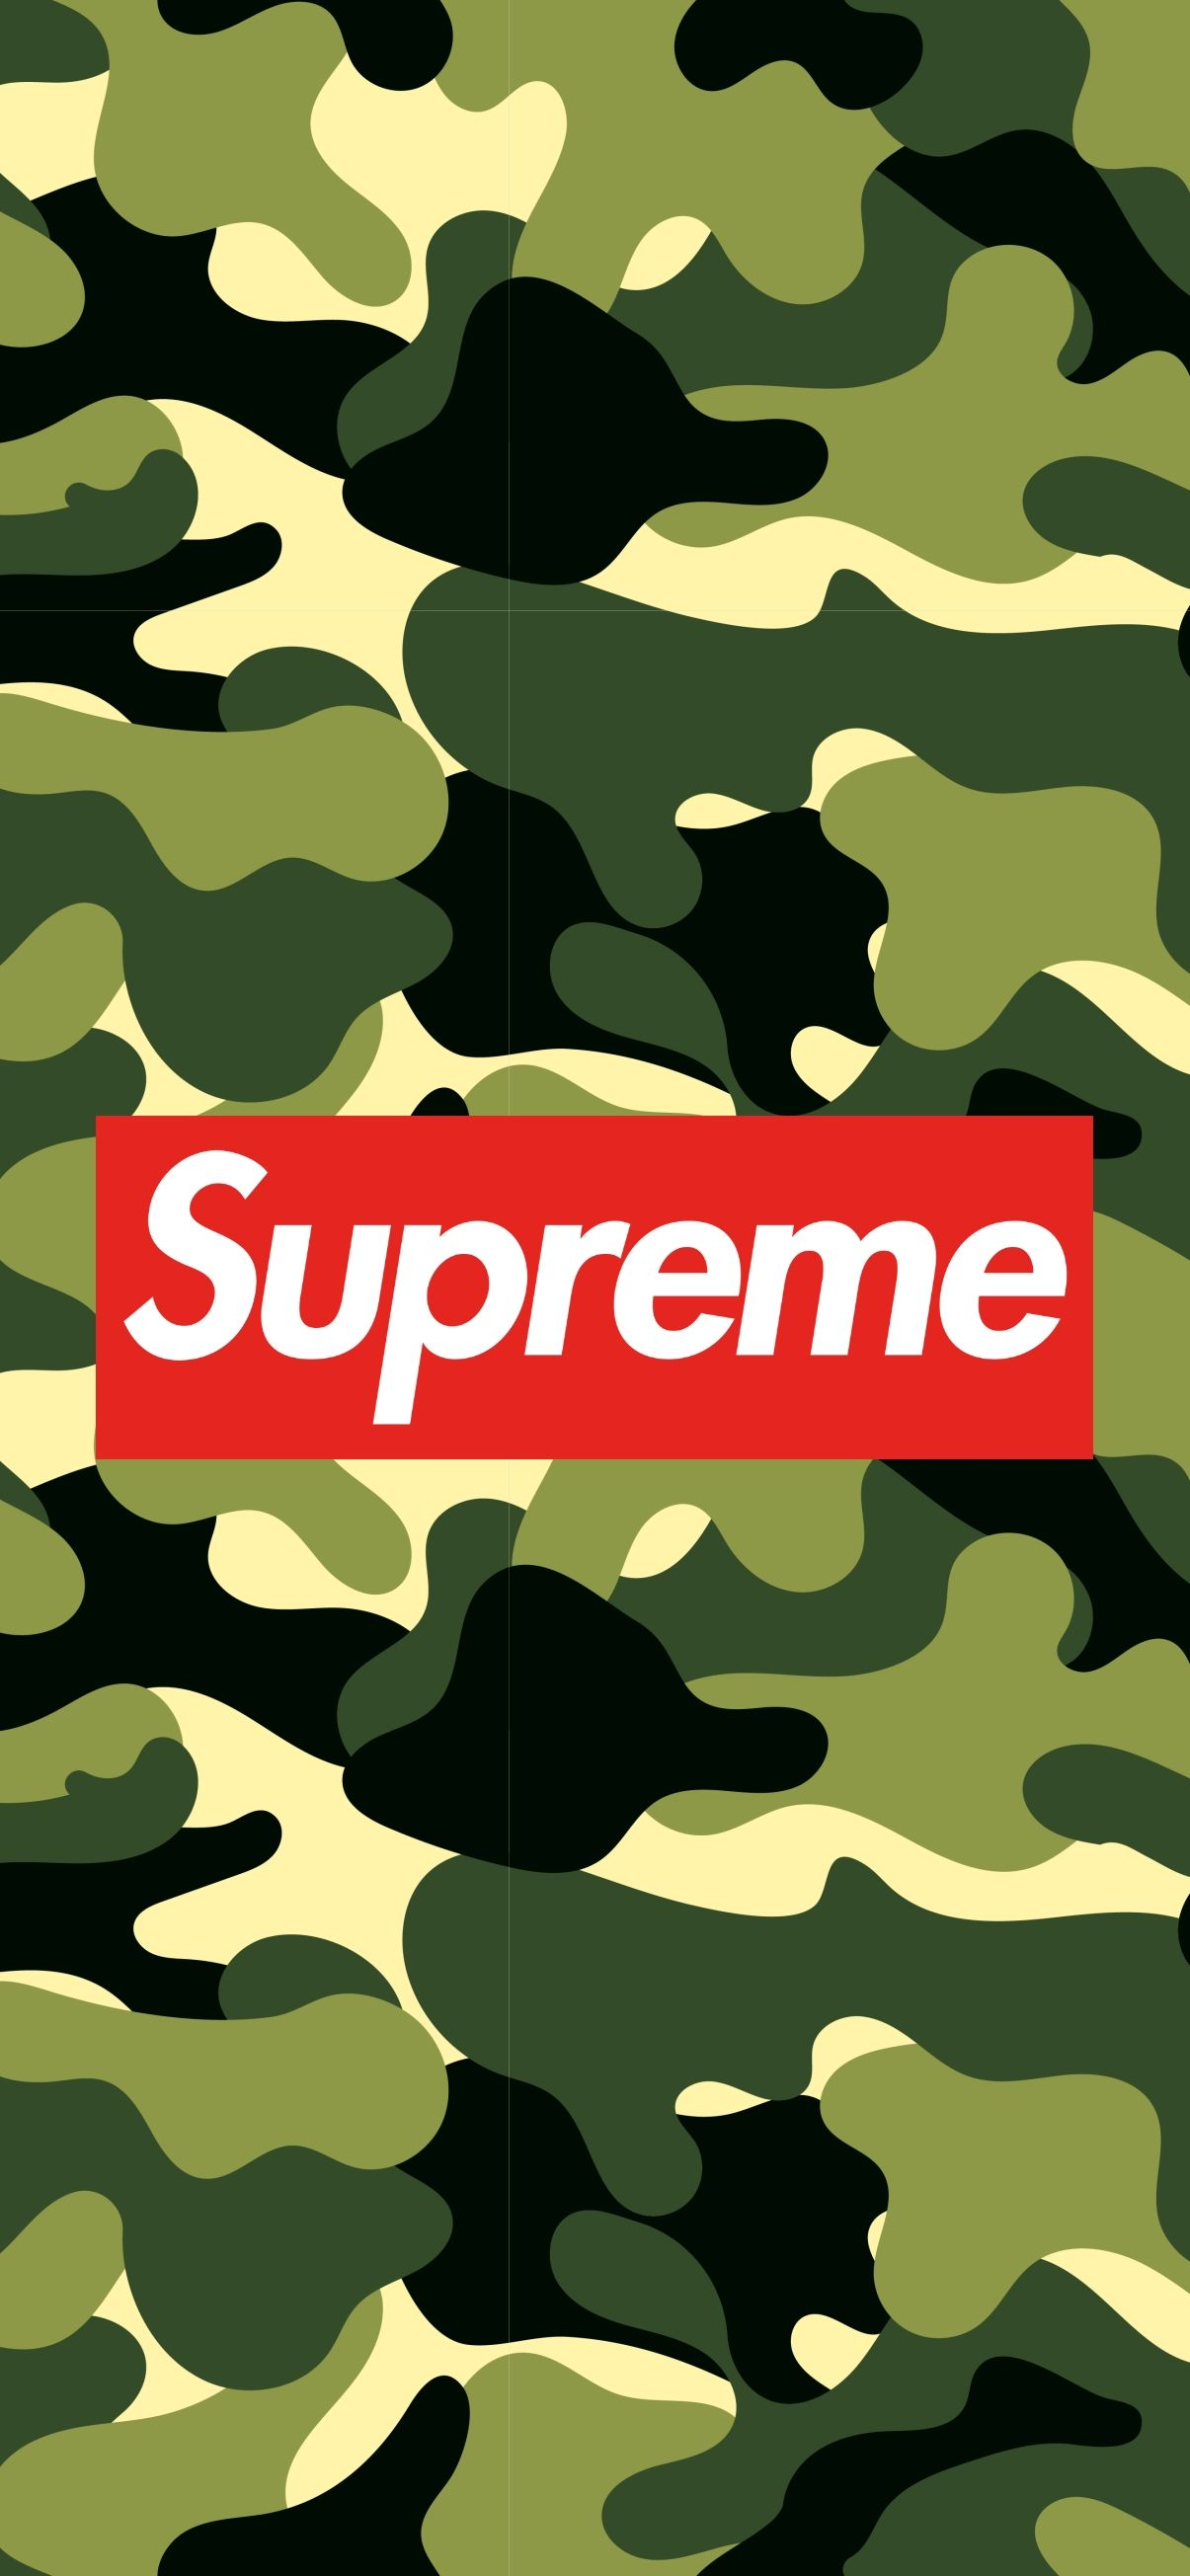 6 Supreme Camouflage Iphone Wallpapers Heroscreen Supreme Iphone Wallpaper Iphone Wallpaper Camouflage Wallpaper